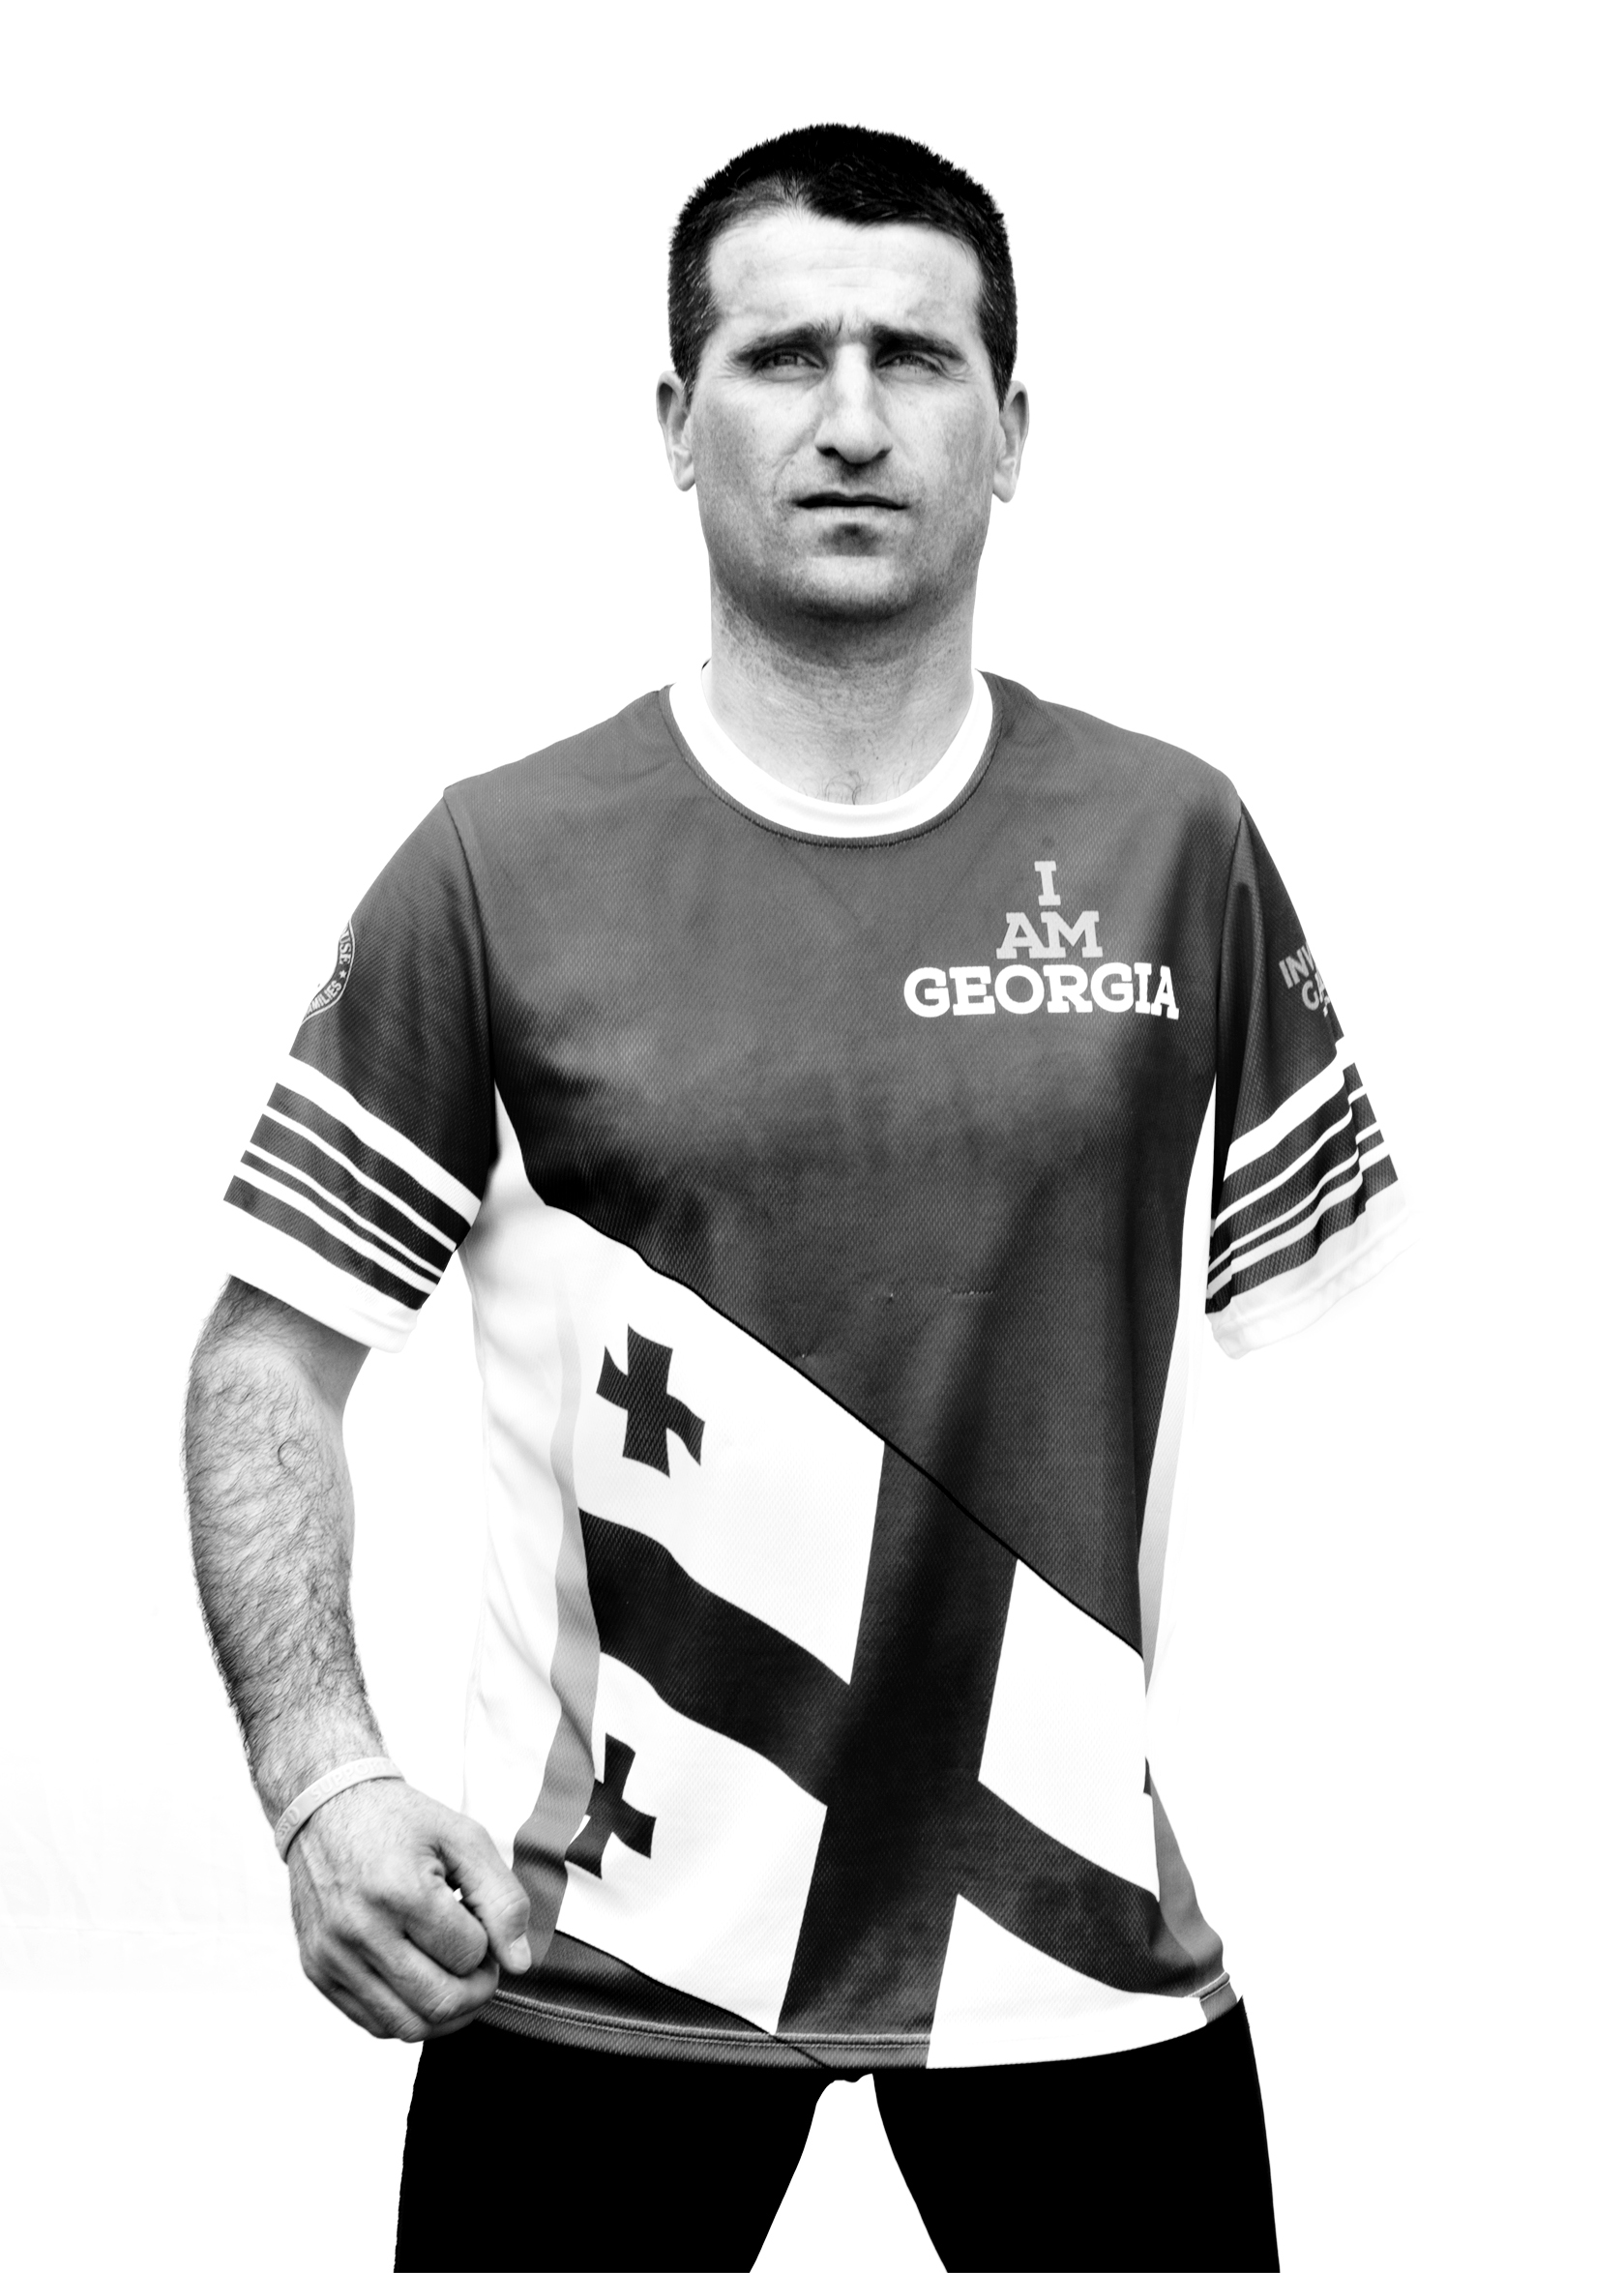 Otar Doijashvili, Georgia, competed in sitting volleyball and rowing